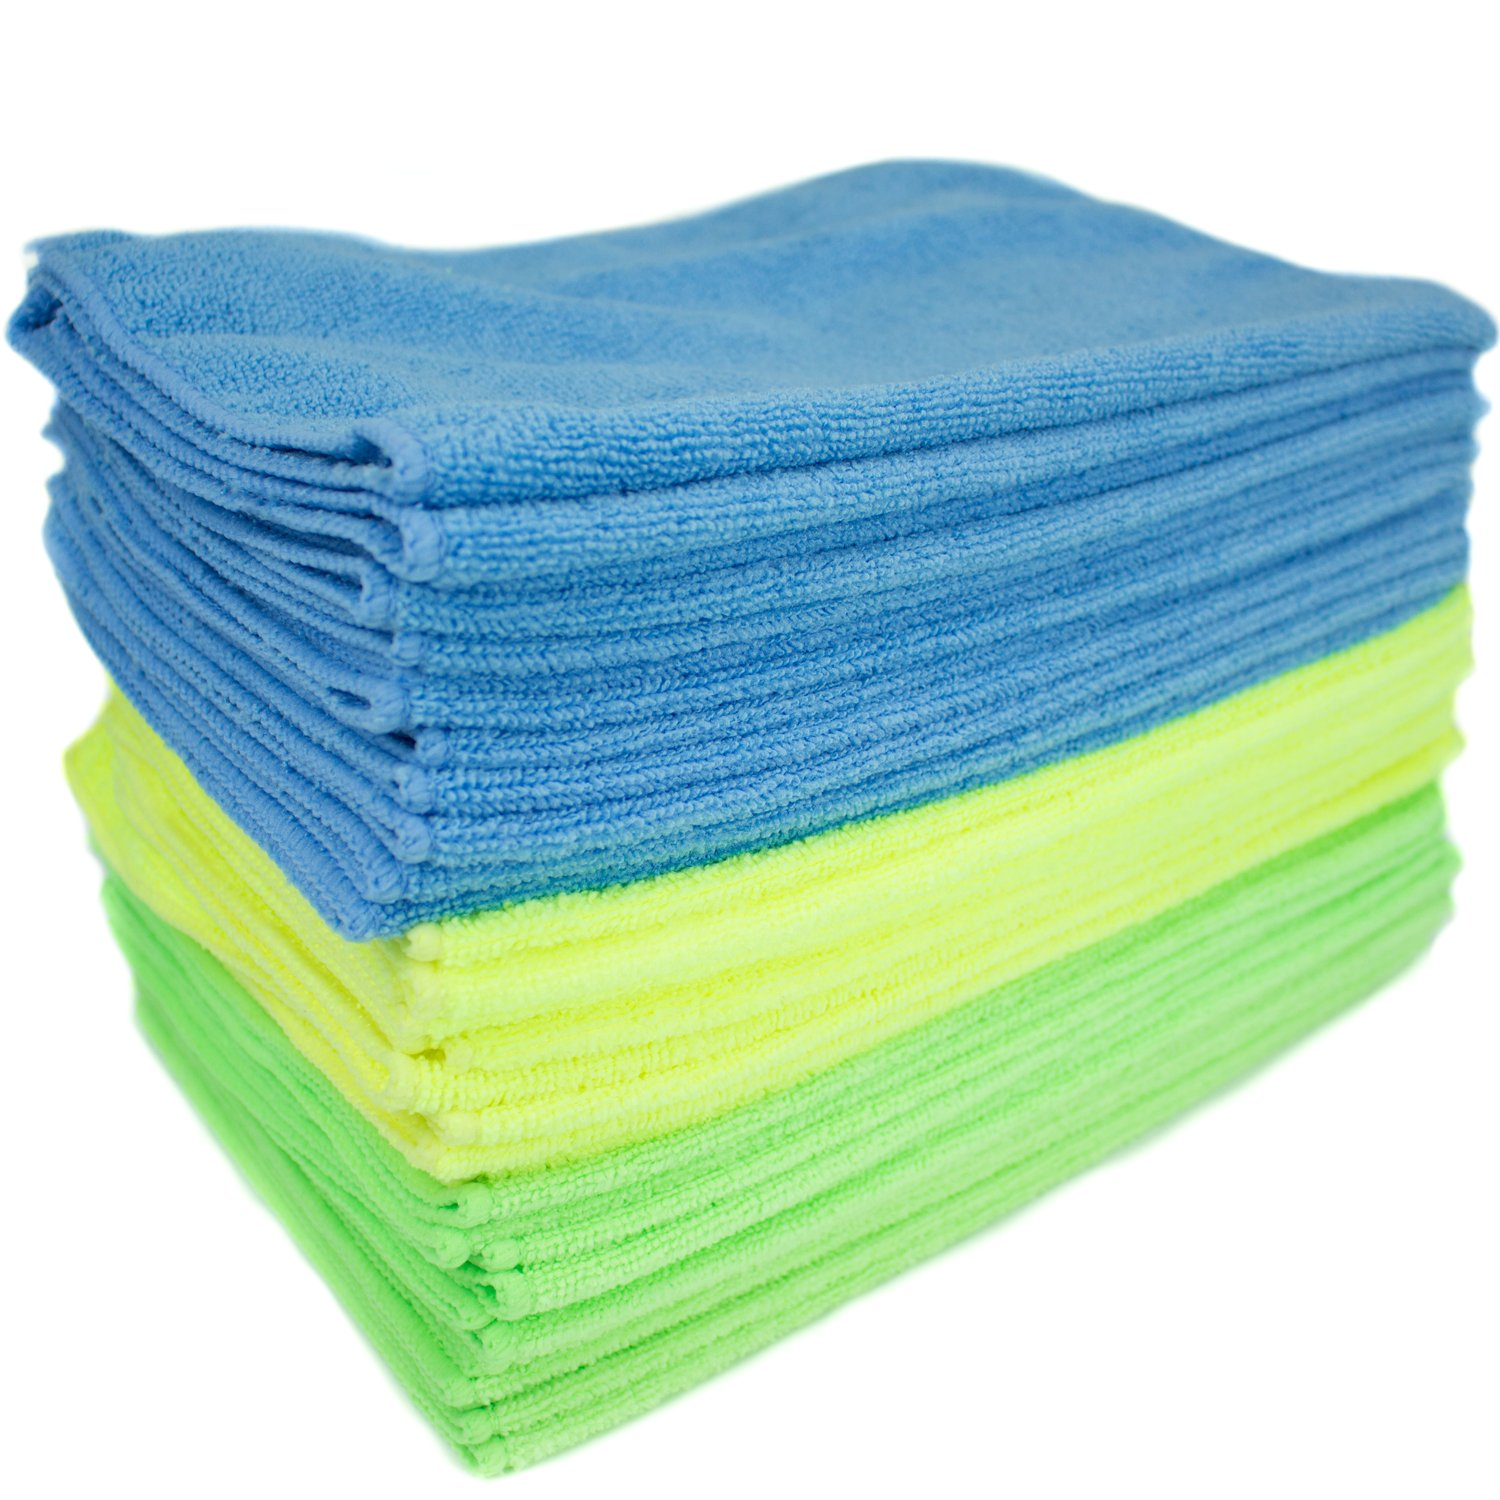 Apparel Accessories 100 Pcs Microfiber Cleaning Cloth 14*14 Dust Wash Glasses Cloth Auto Detailing Glass Watch Jewelry Diy Lcd Led Tv Lens Cloth With The Best Service